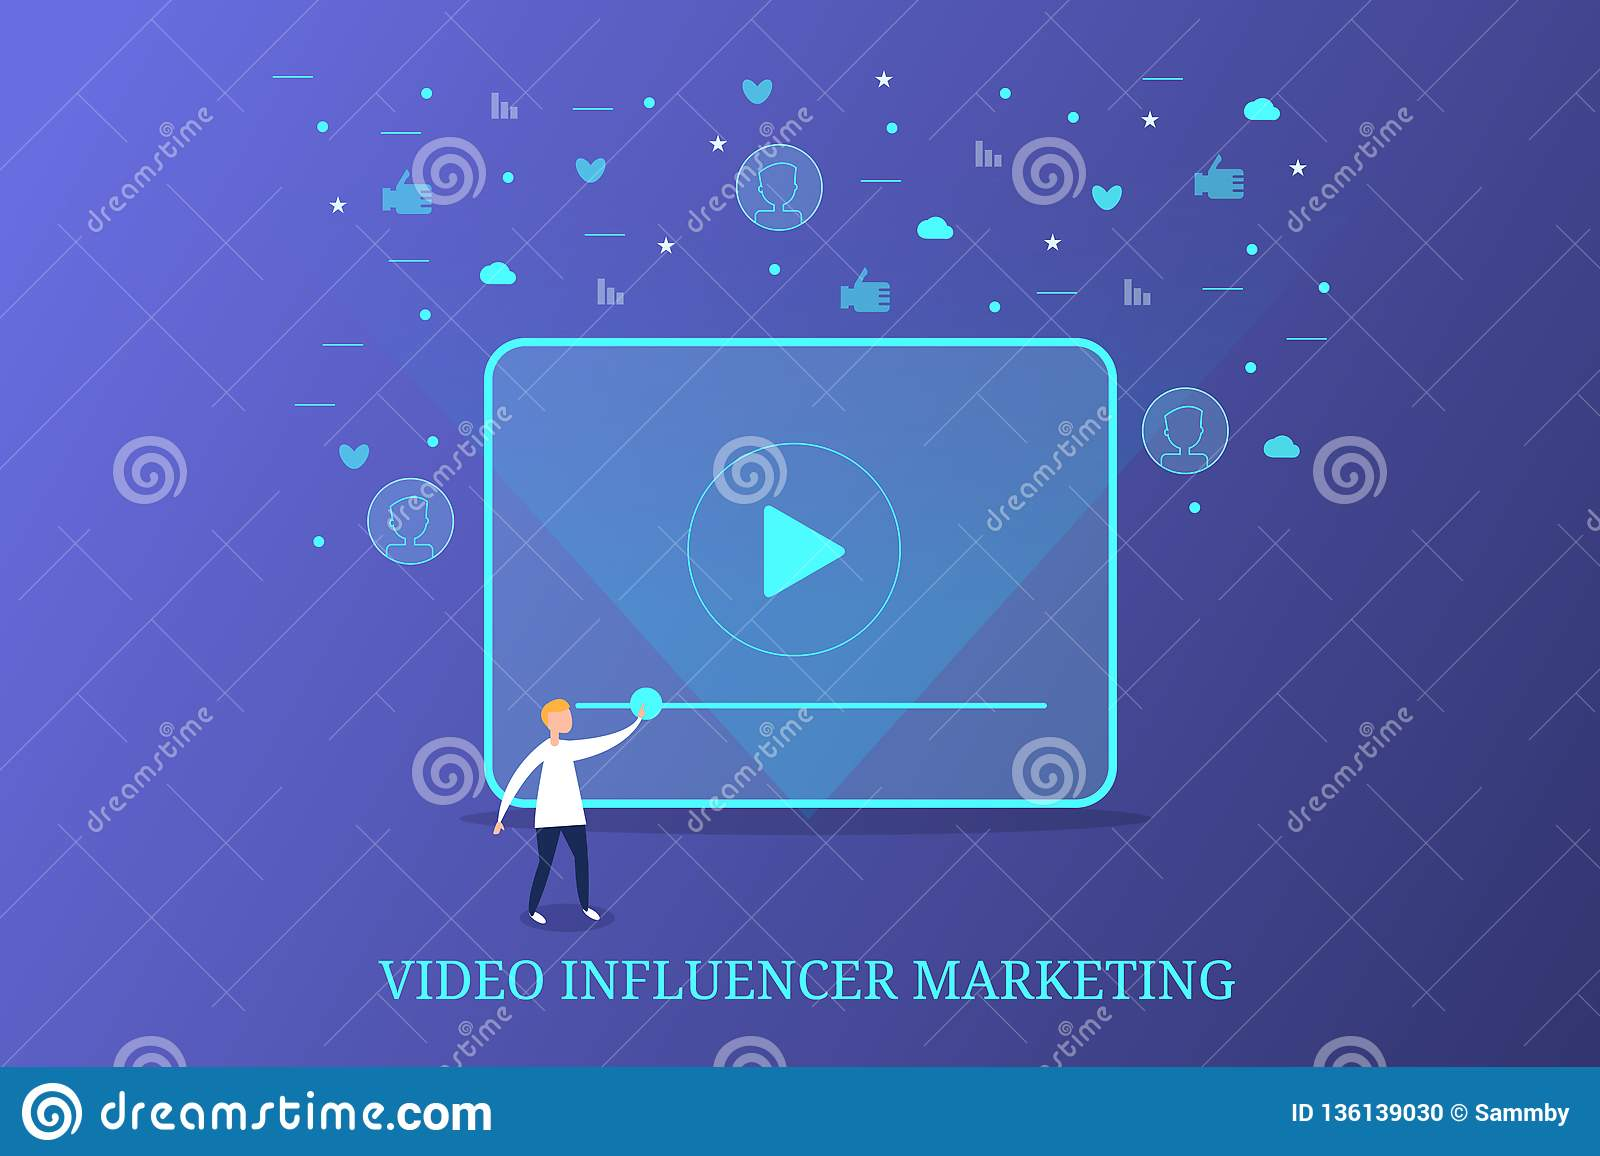 Video Influencer Marketing, Social Media Advertising